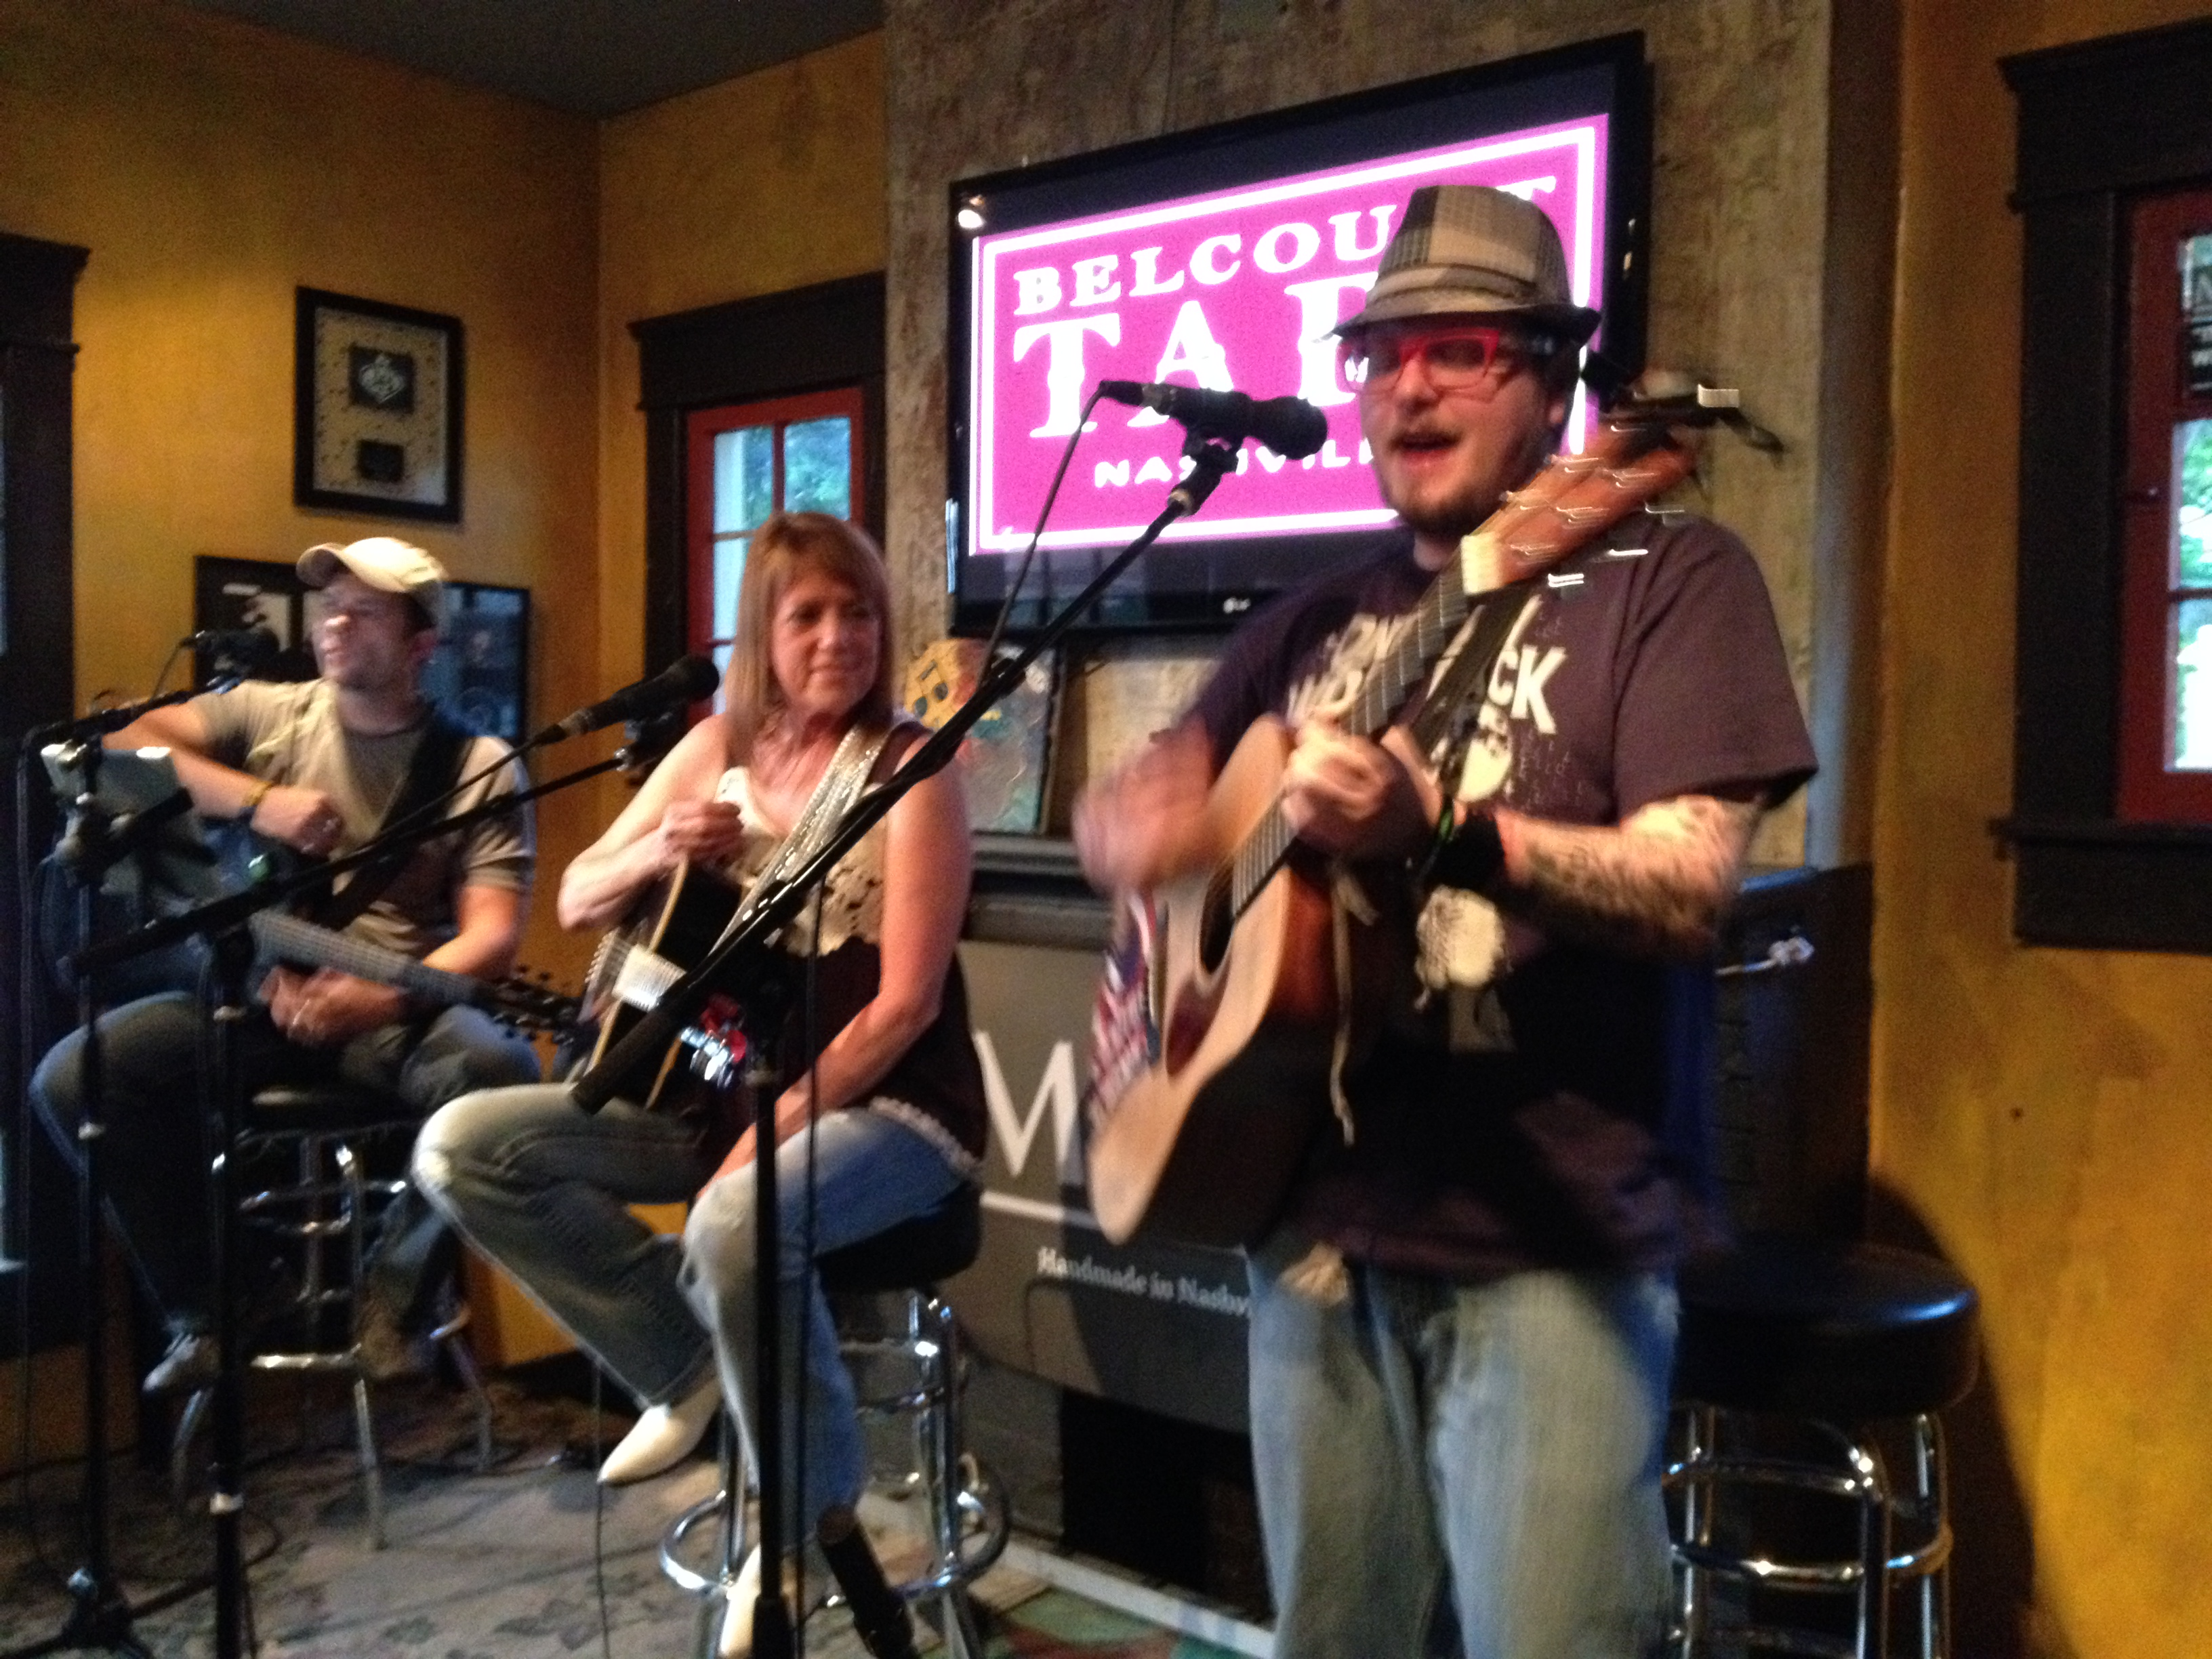 Songwriter Benefit at Belcourt Taps